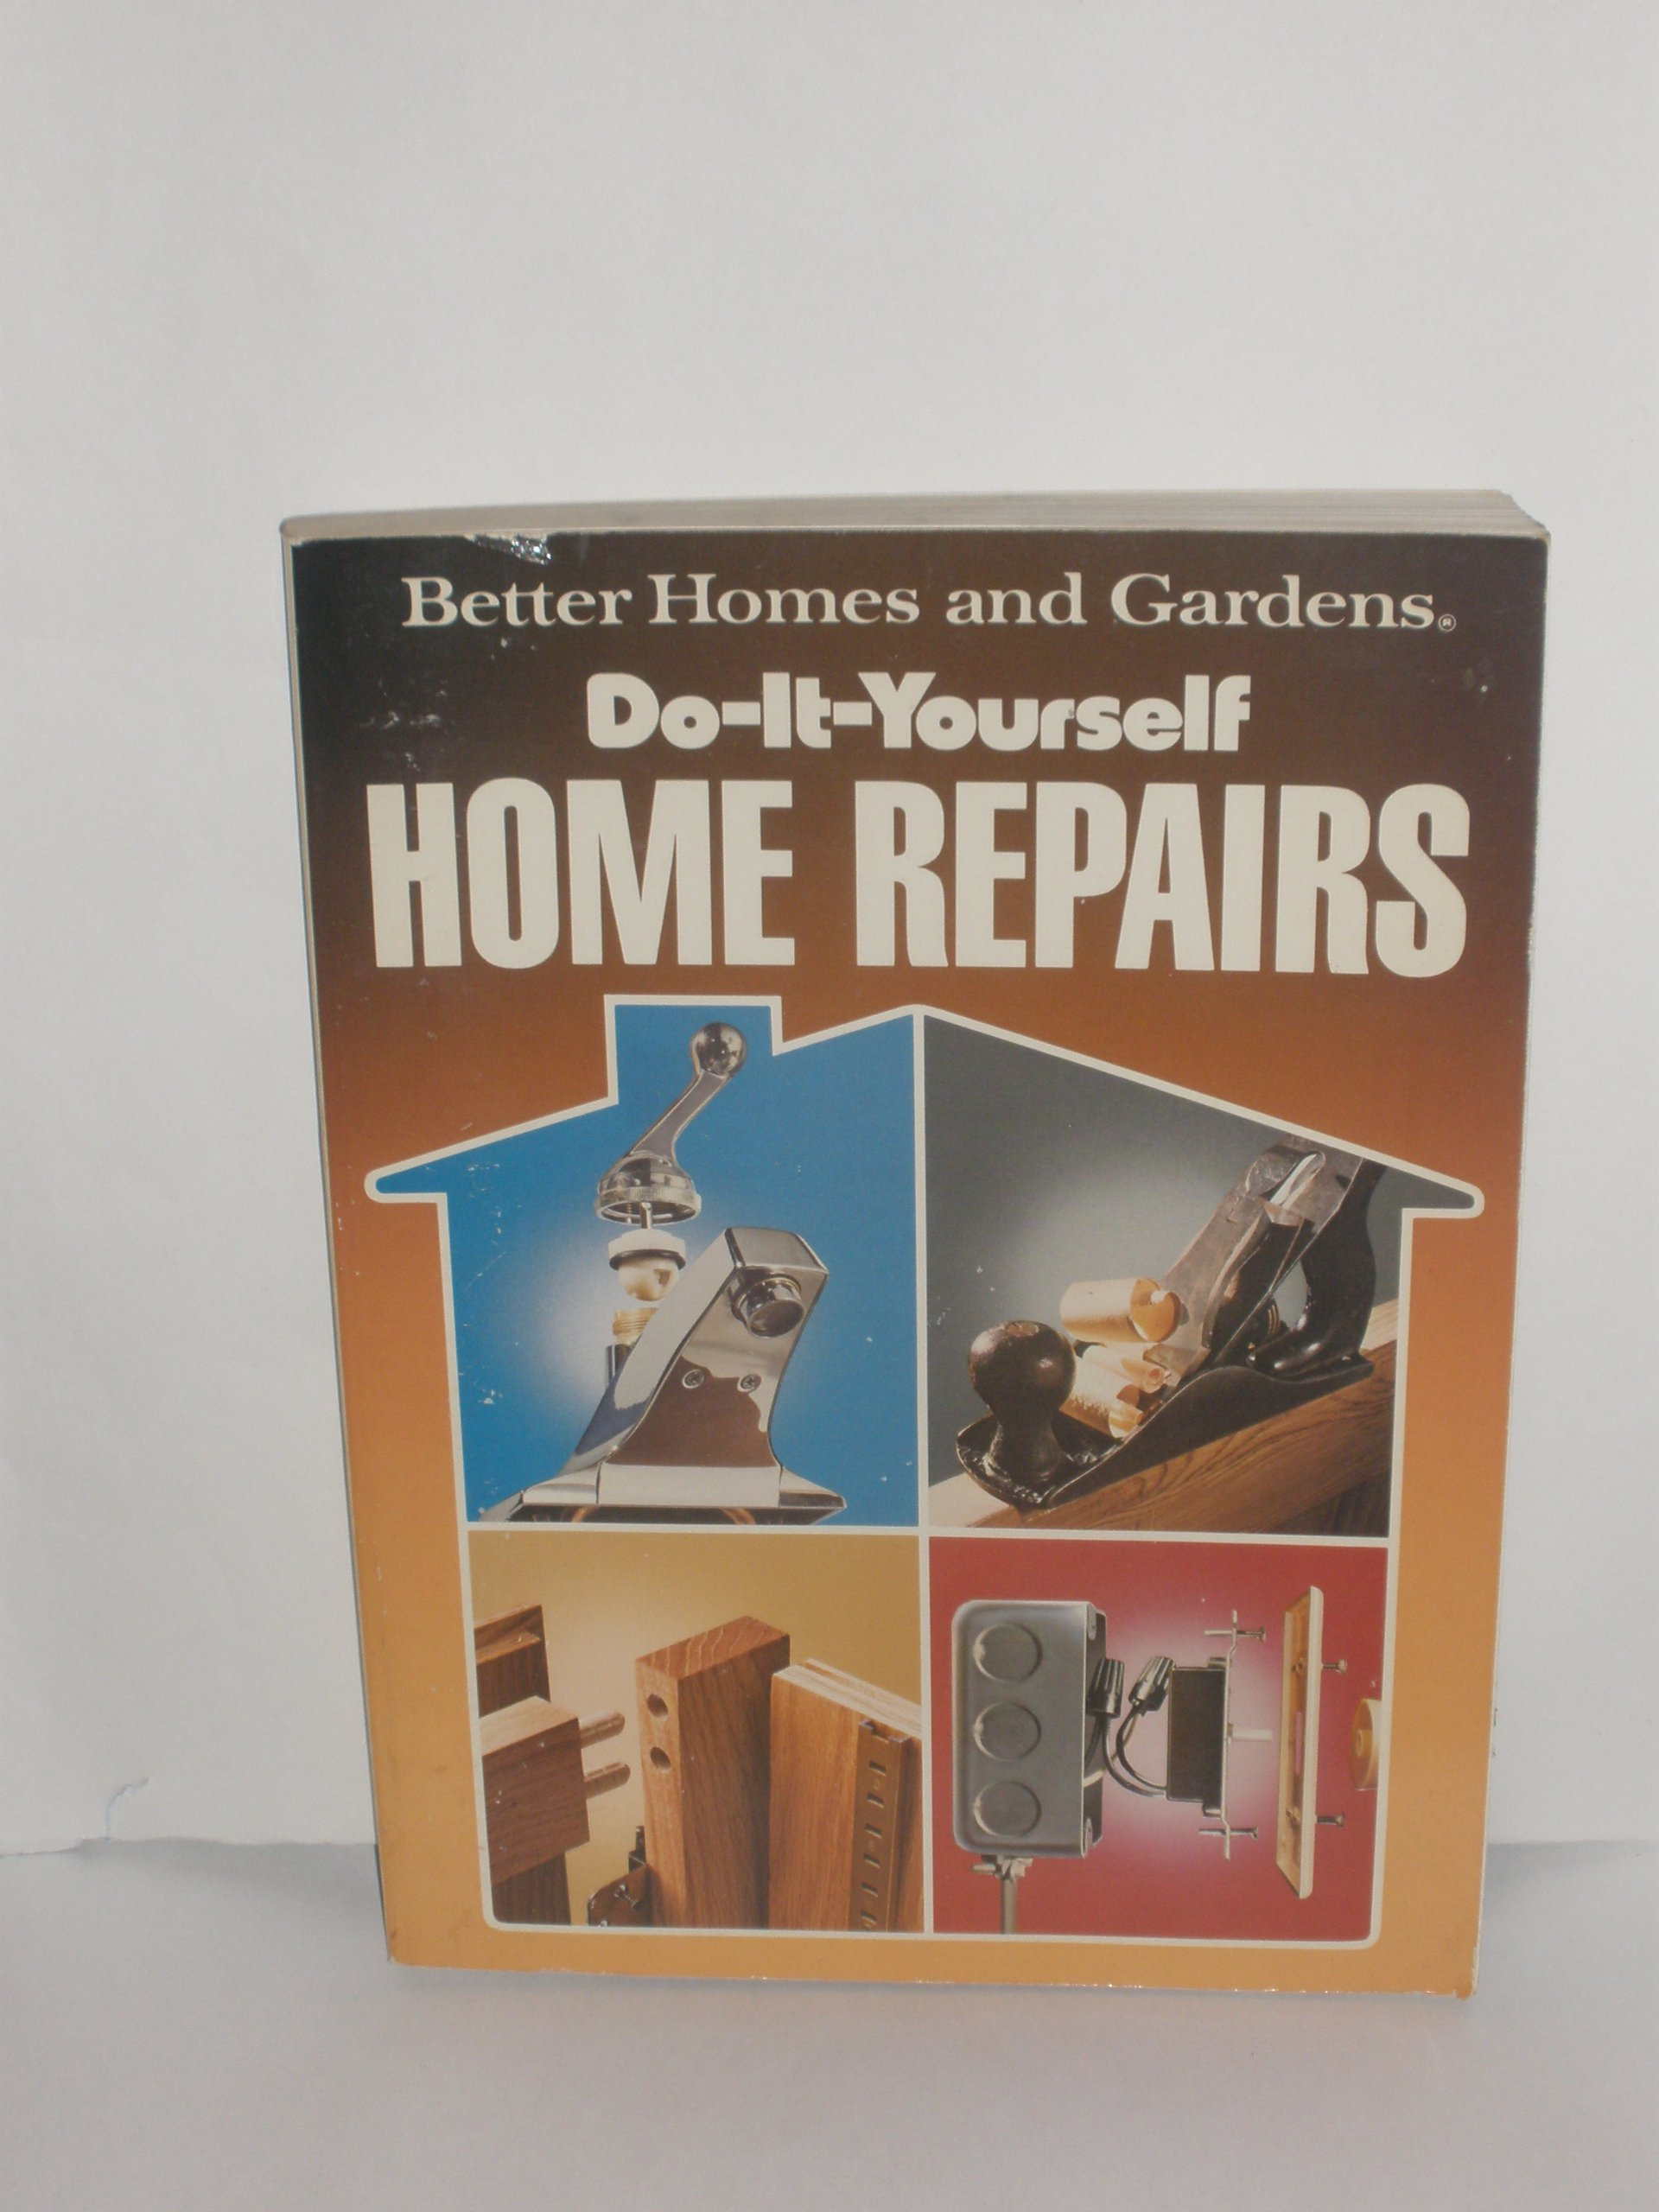 Do it yourself home repairs amazon better homes gardens do it yourself home repairs amazon better homes gardens 9780696015205 books solutioingenieria Images